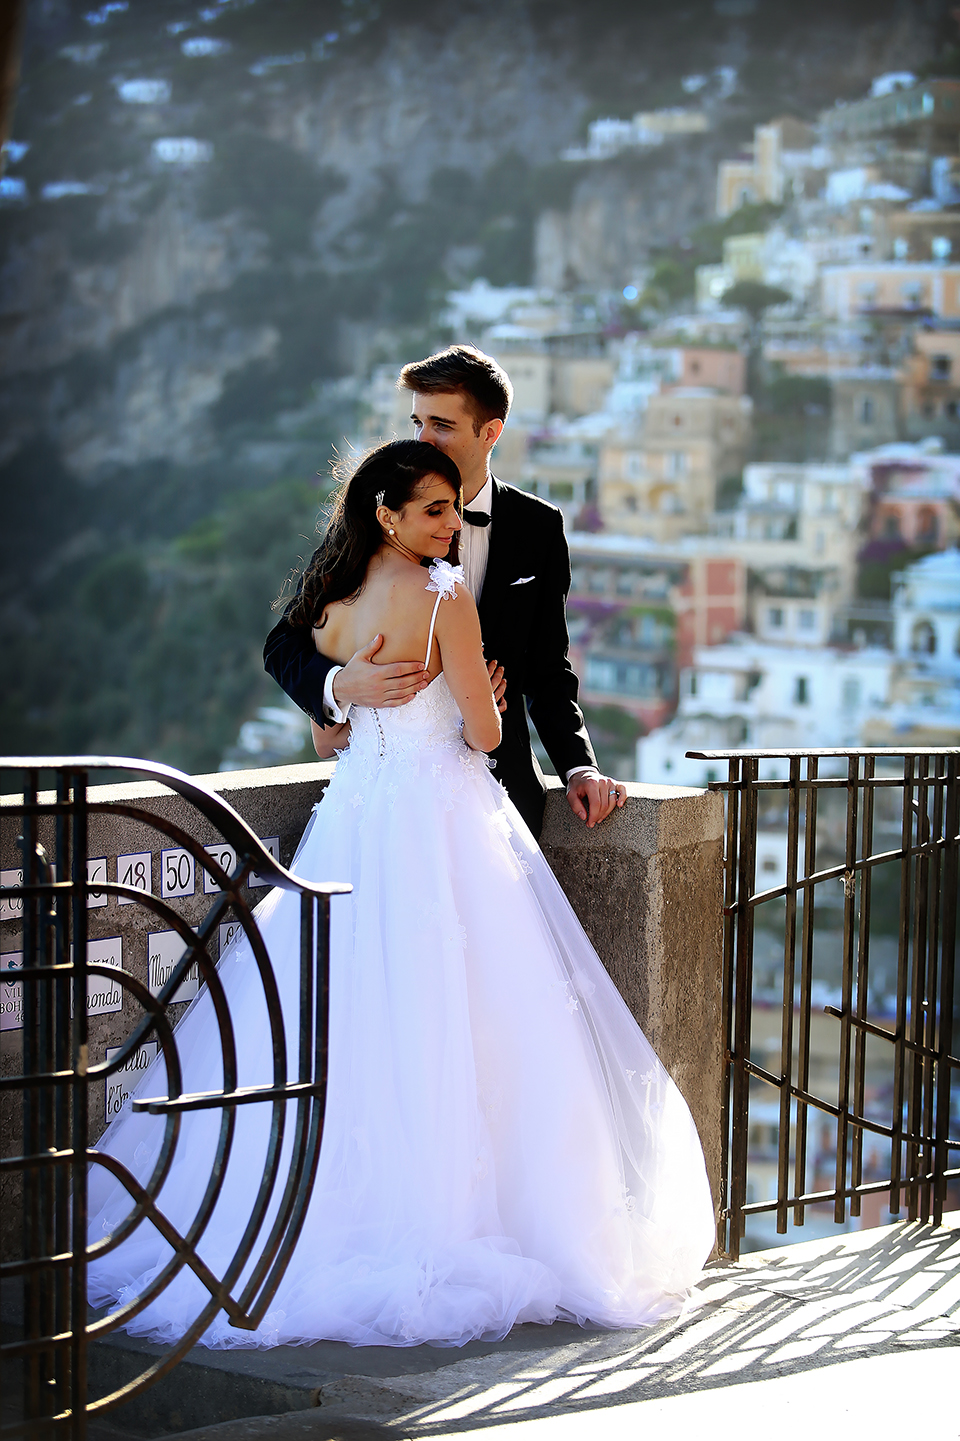 positano-weddin-photographers-italy-wedding-photographers-destination-wedding-photographers-estilo-best-wedding-photographers-in-the-world-casper-bosman-wedding-gown-wedding-style-stylish-modern-wedding-photography-053b.jpg